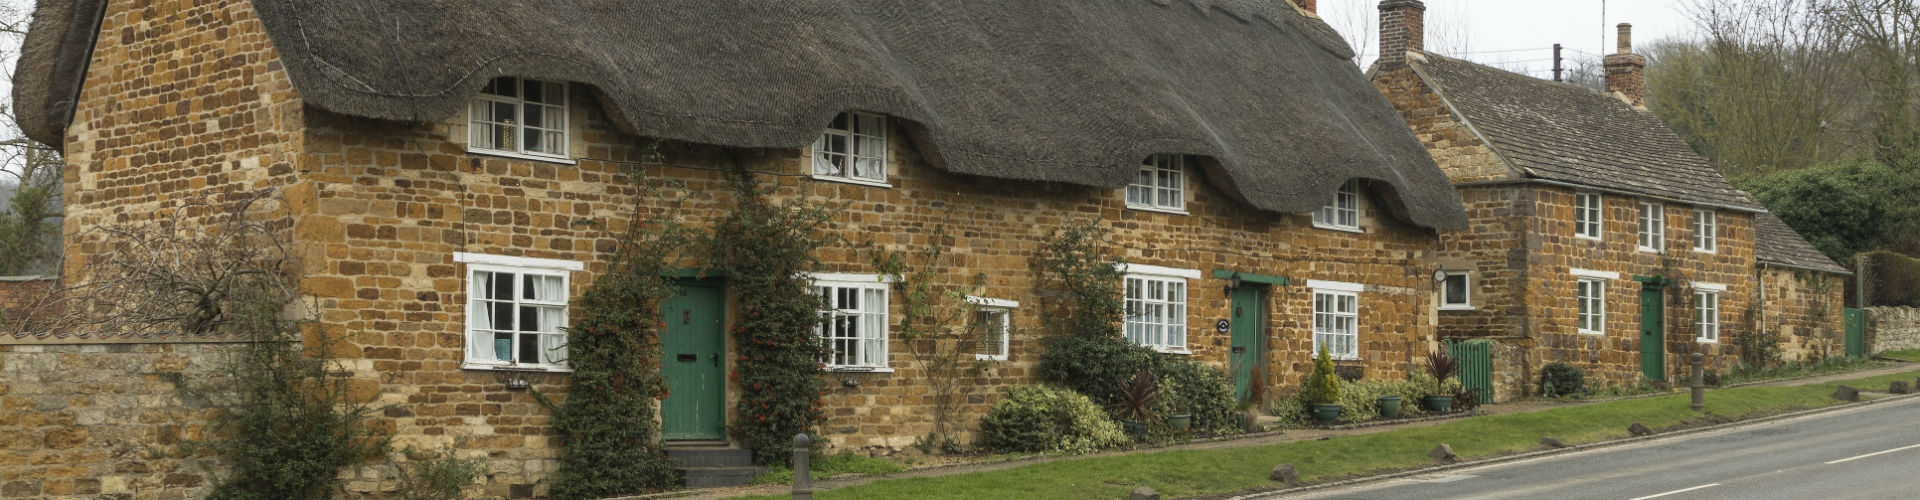 A row of picturesque thatched houses in a rural area which are insured under Acres Insurance's household insurance